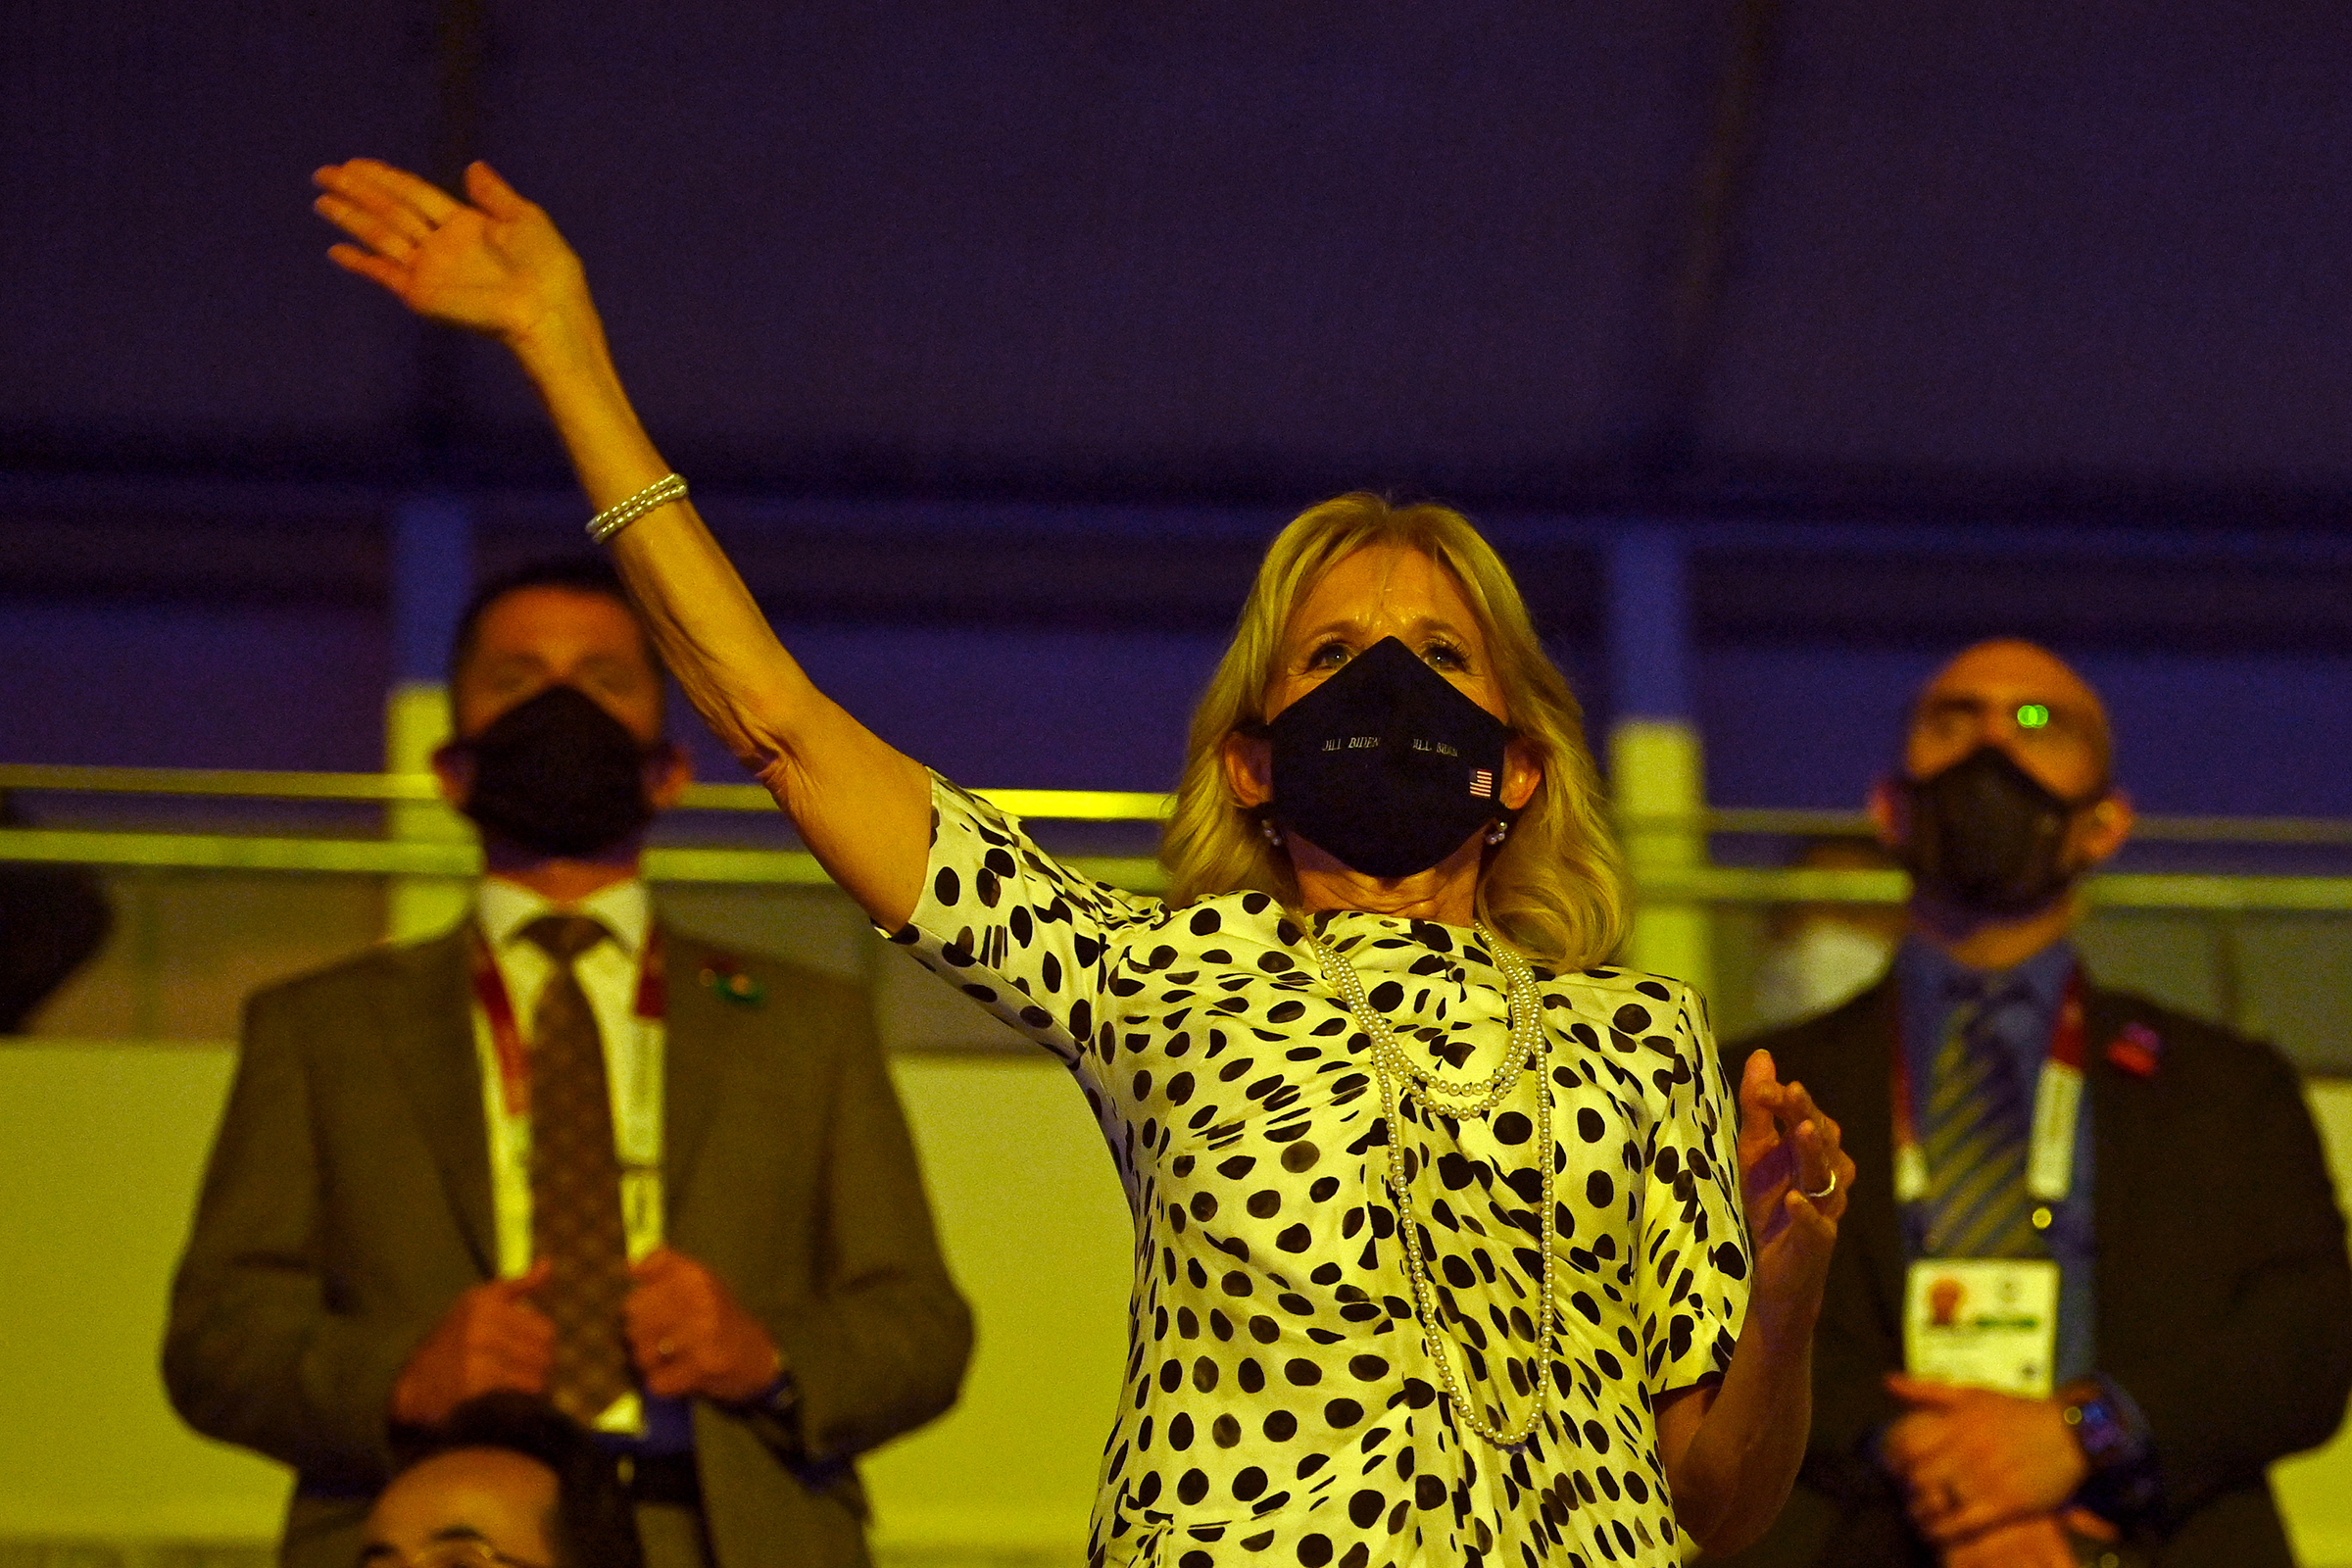 First lady Jill Biden waves during the Opening Ceremony of the Tokyo Olympics on July 23.